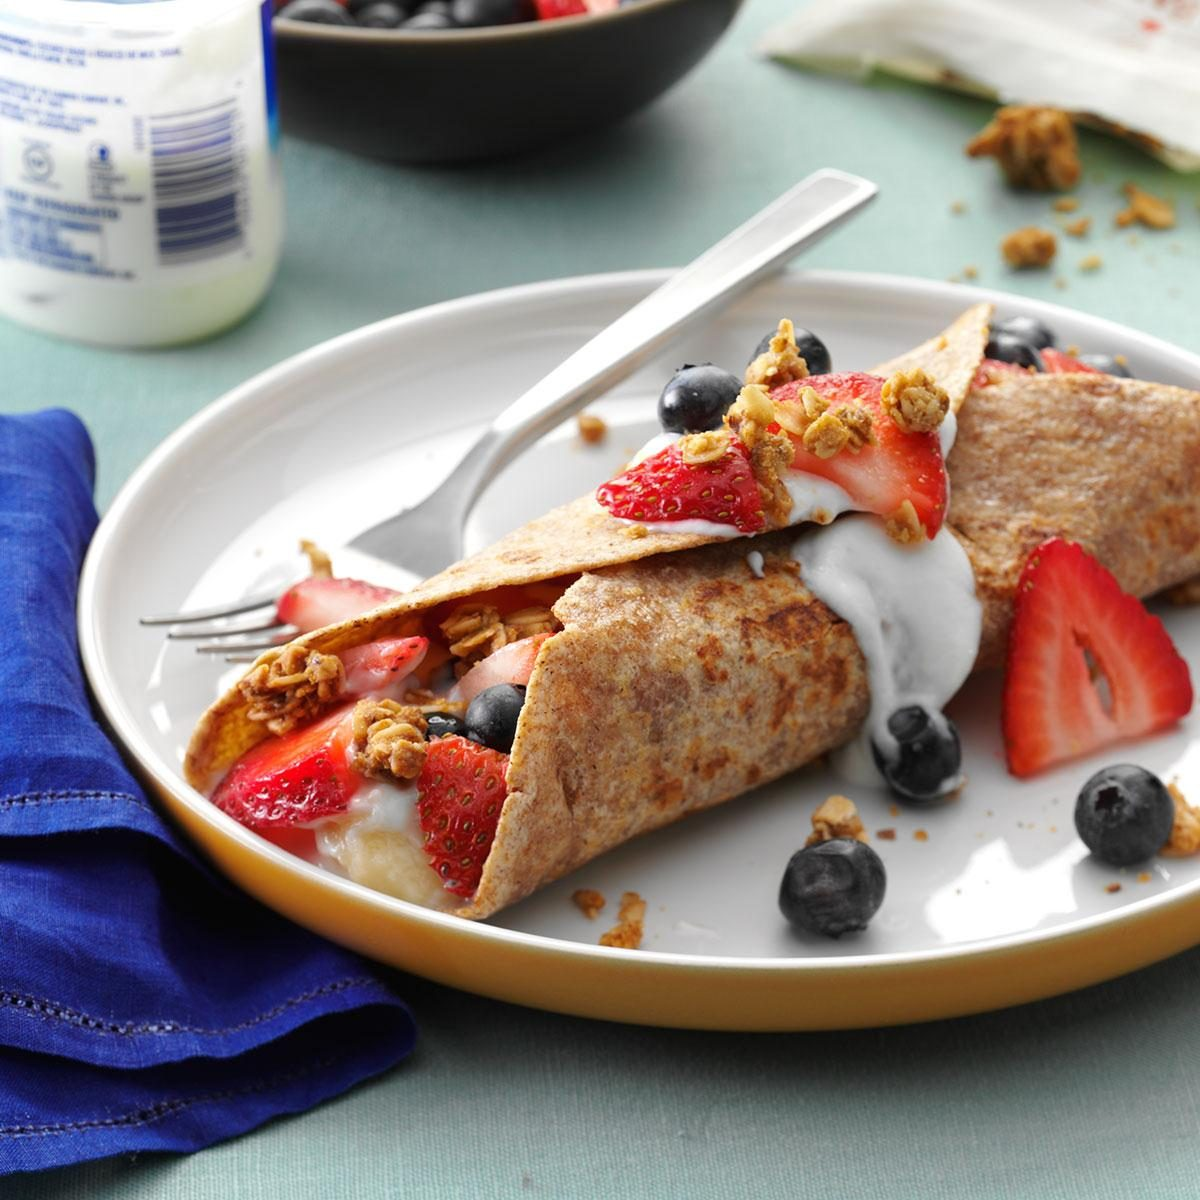 Day 1 Breakfast: Fruit-Filled French Toast Wraps